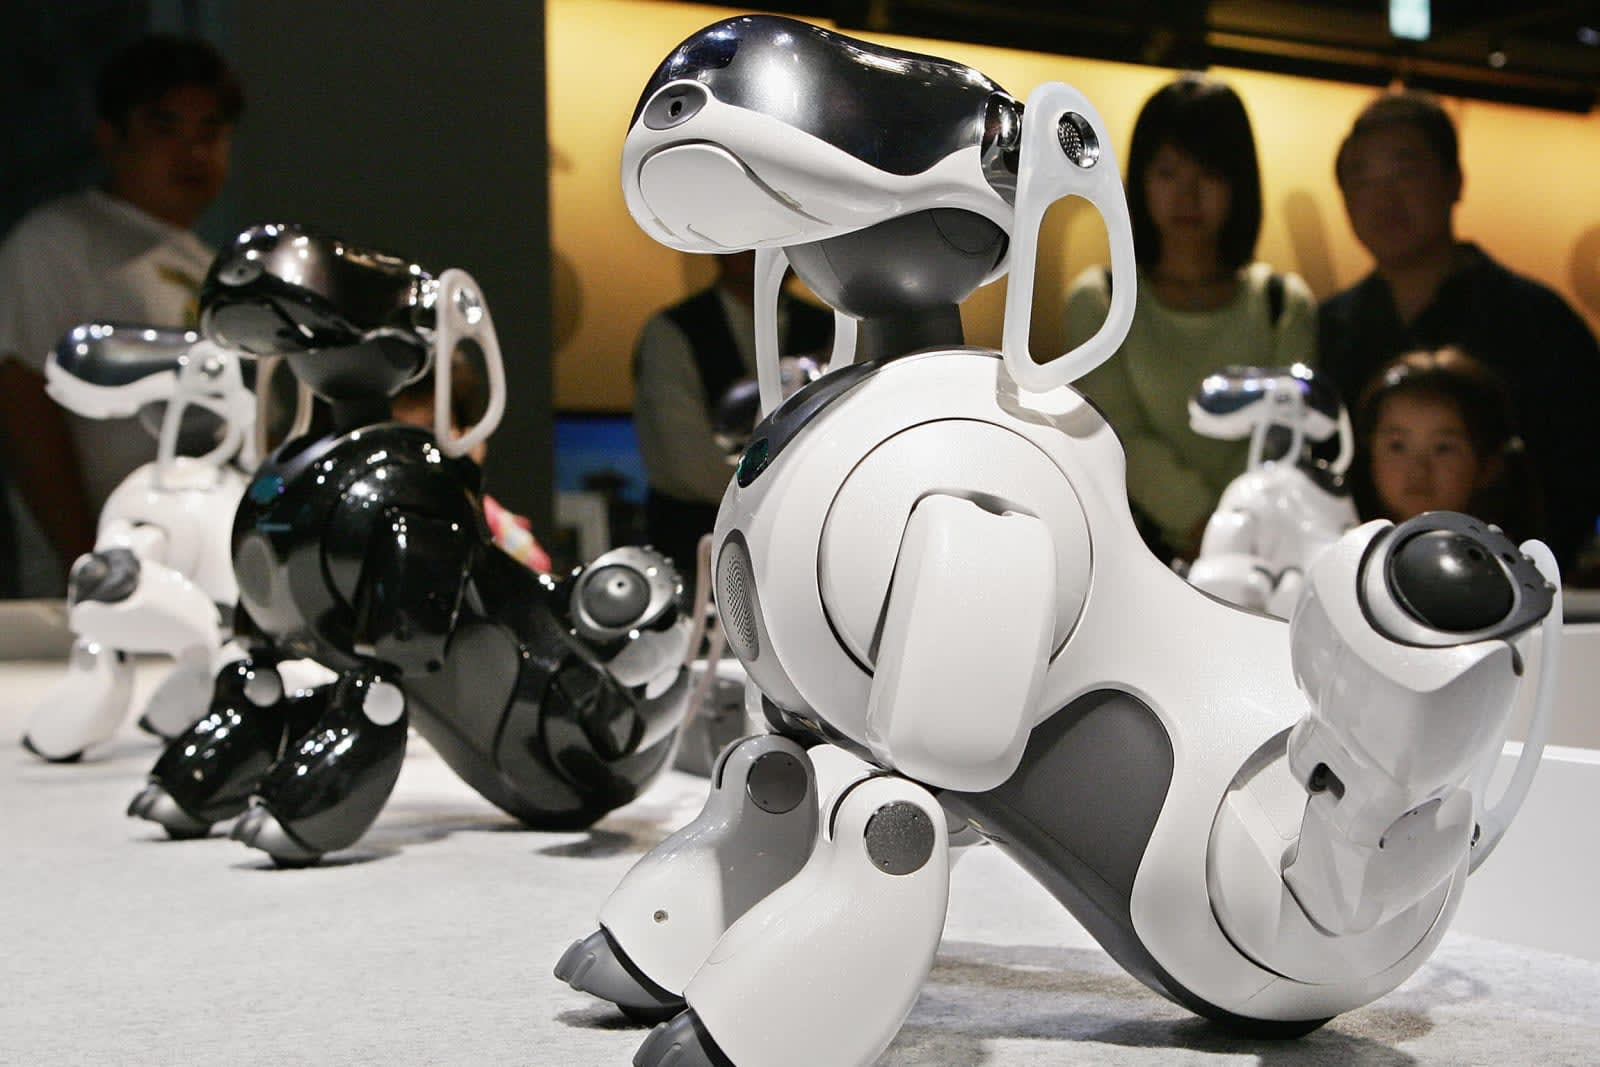 Sony's first robot in years will be an Aibo sequel